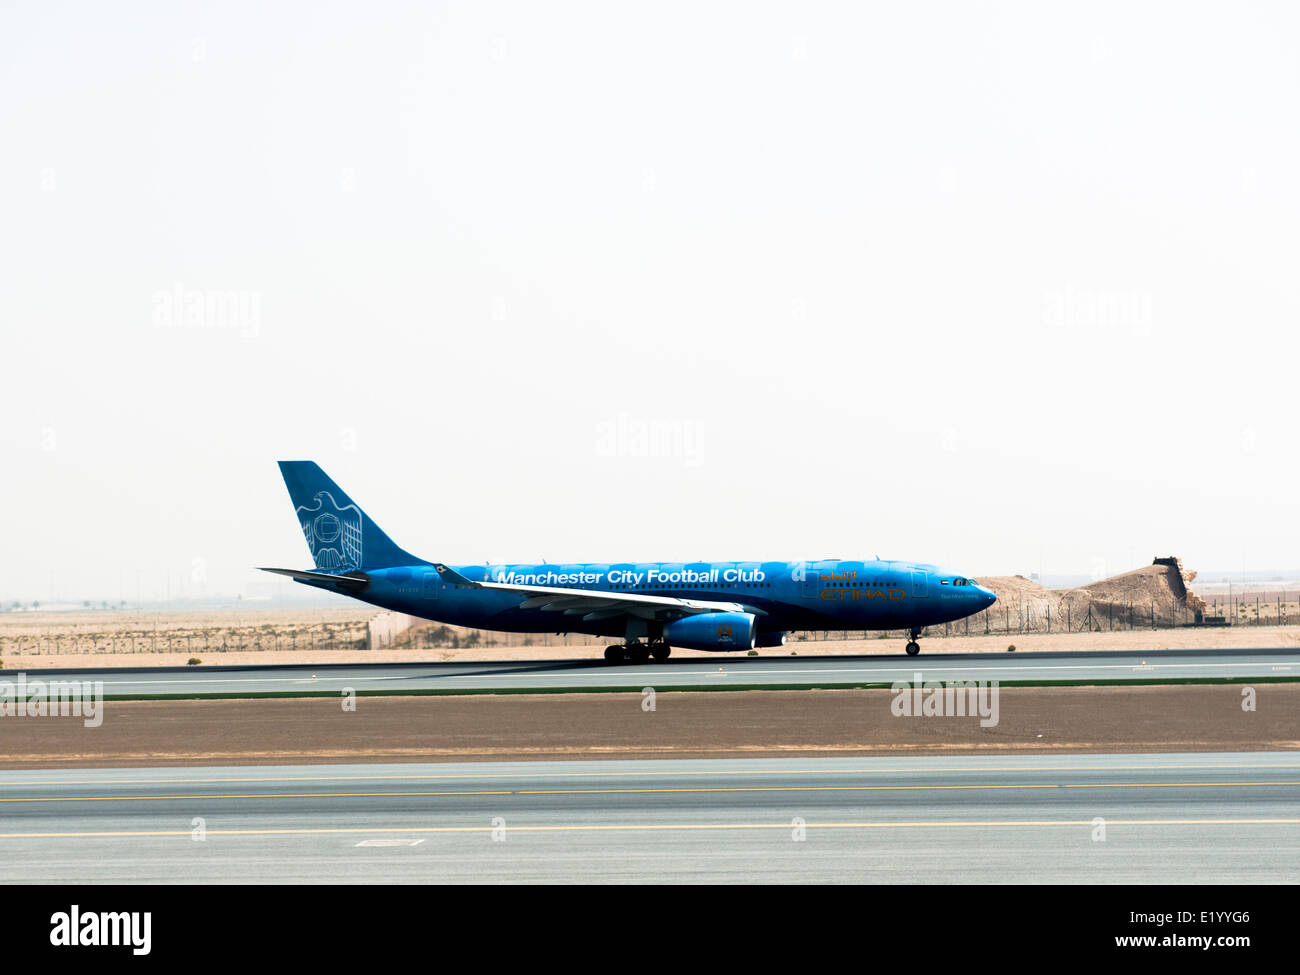 An Etihad airways airplane on the runway at the airport in Abu Dhabi. - Stock Image